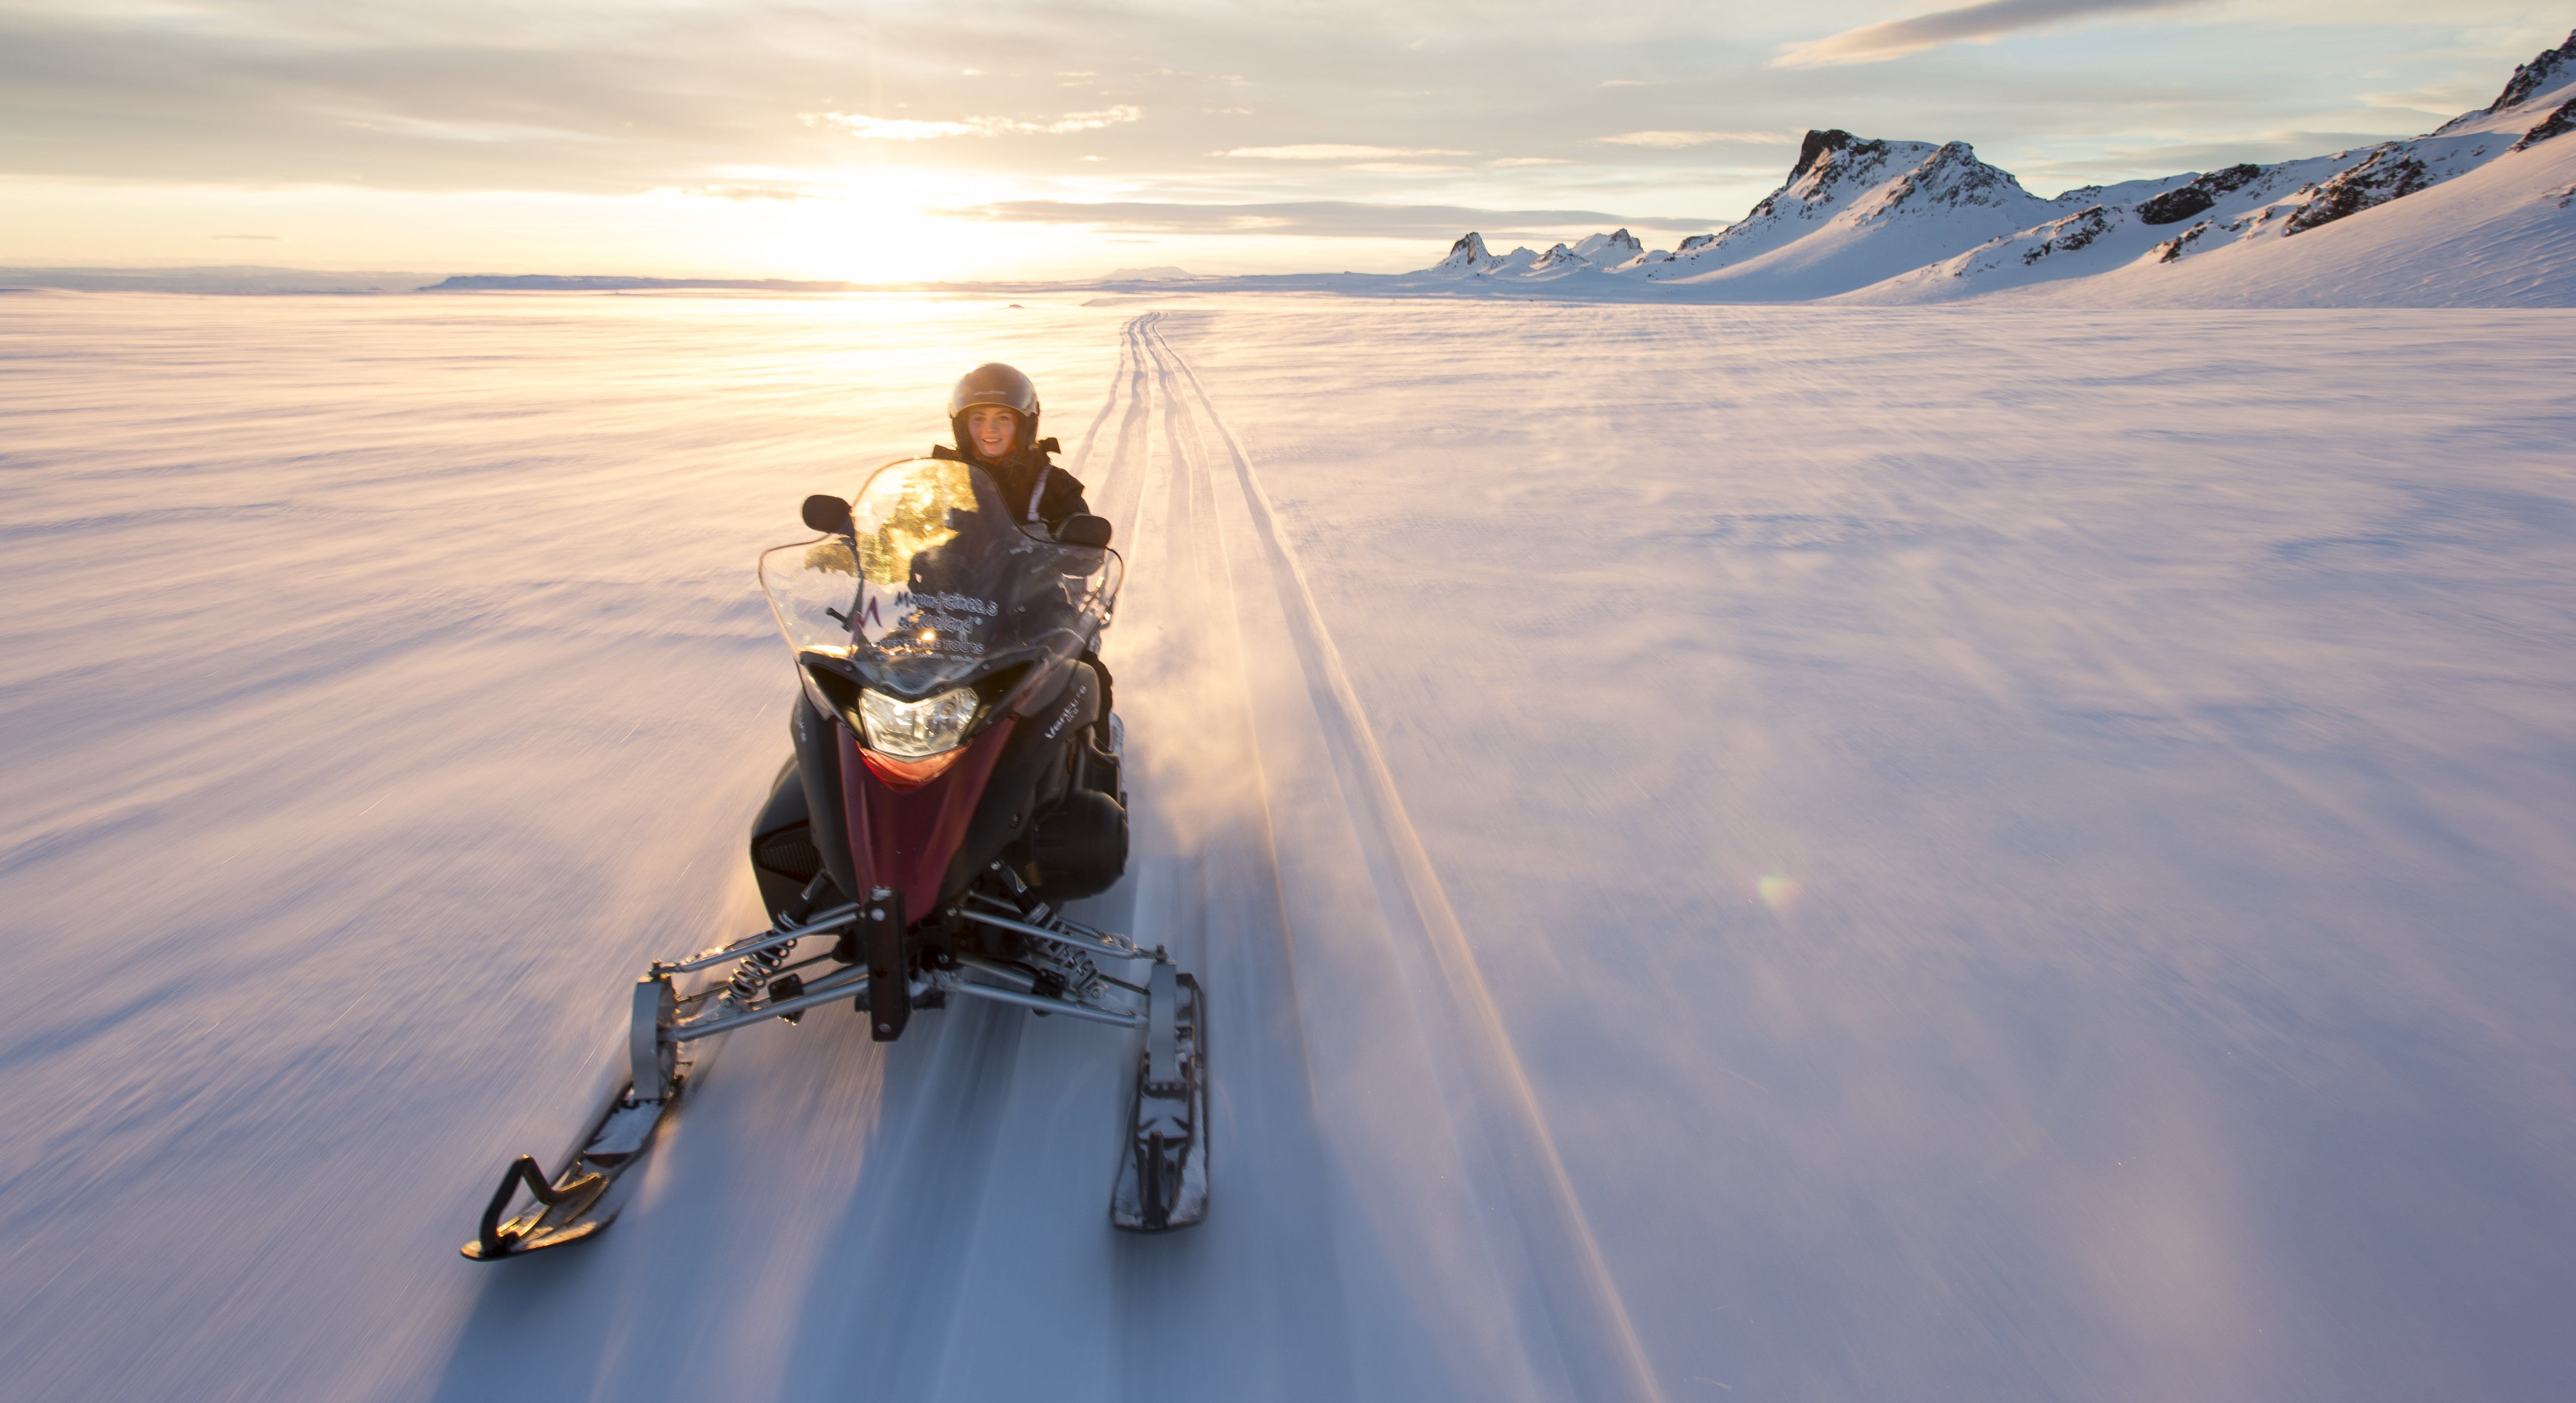 3 in 1 Bundle Discount Activity Tours | Snowmobile, Glacier Hike & Inside a Volcano - day 2